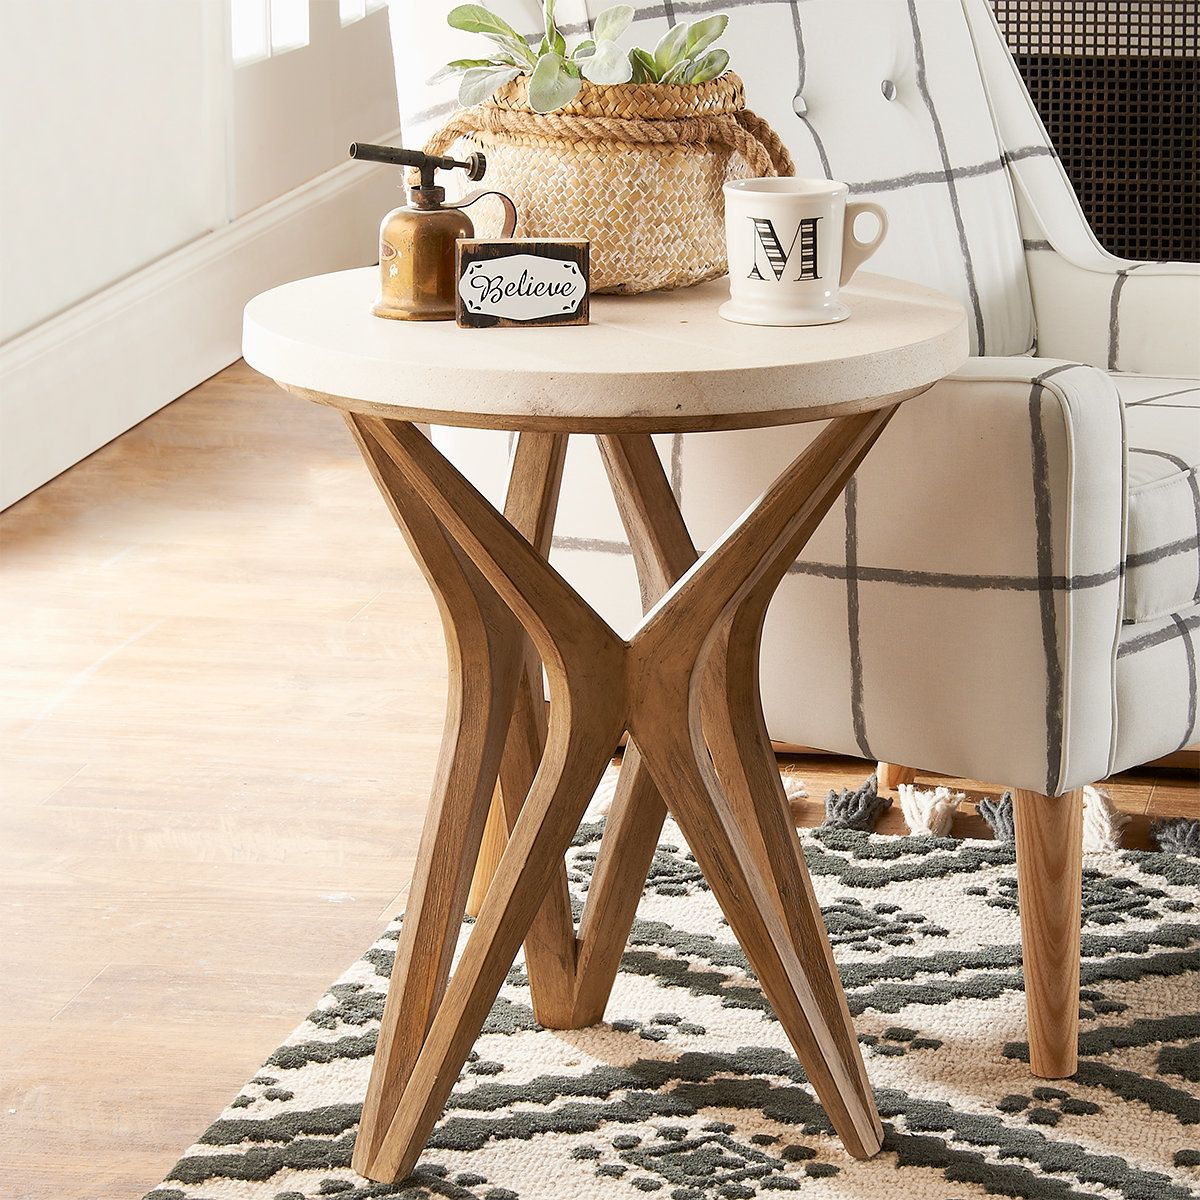 Handcrafted Harmony Side Table In 2020 Table Decor Living Room Living Room Side Table Side Table Decor